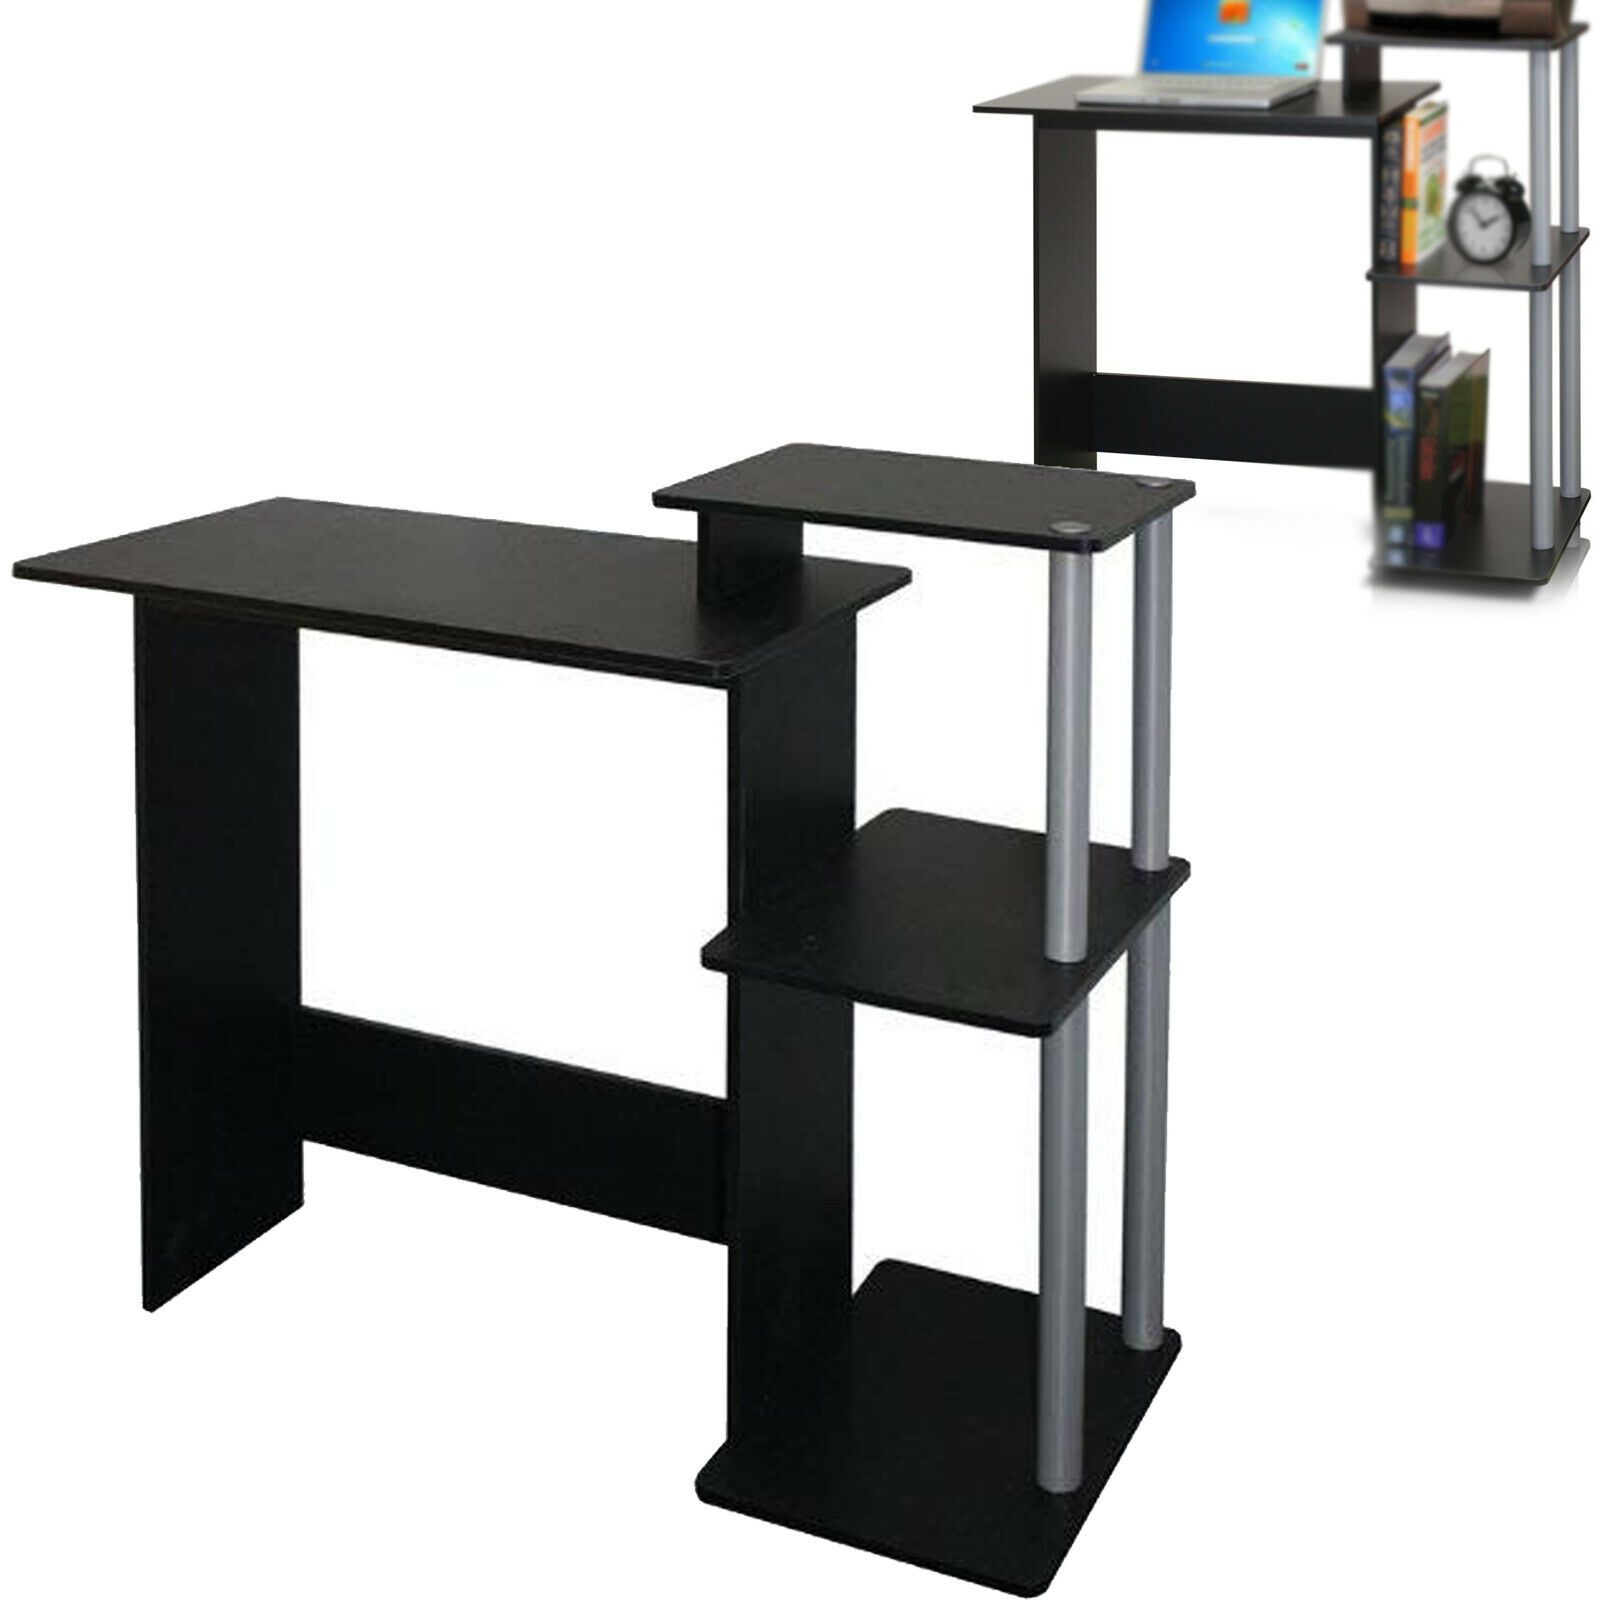 - COMPUTER DESK TABLE Laptop Small Workstation Home Office Compact